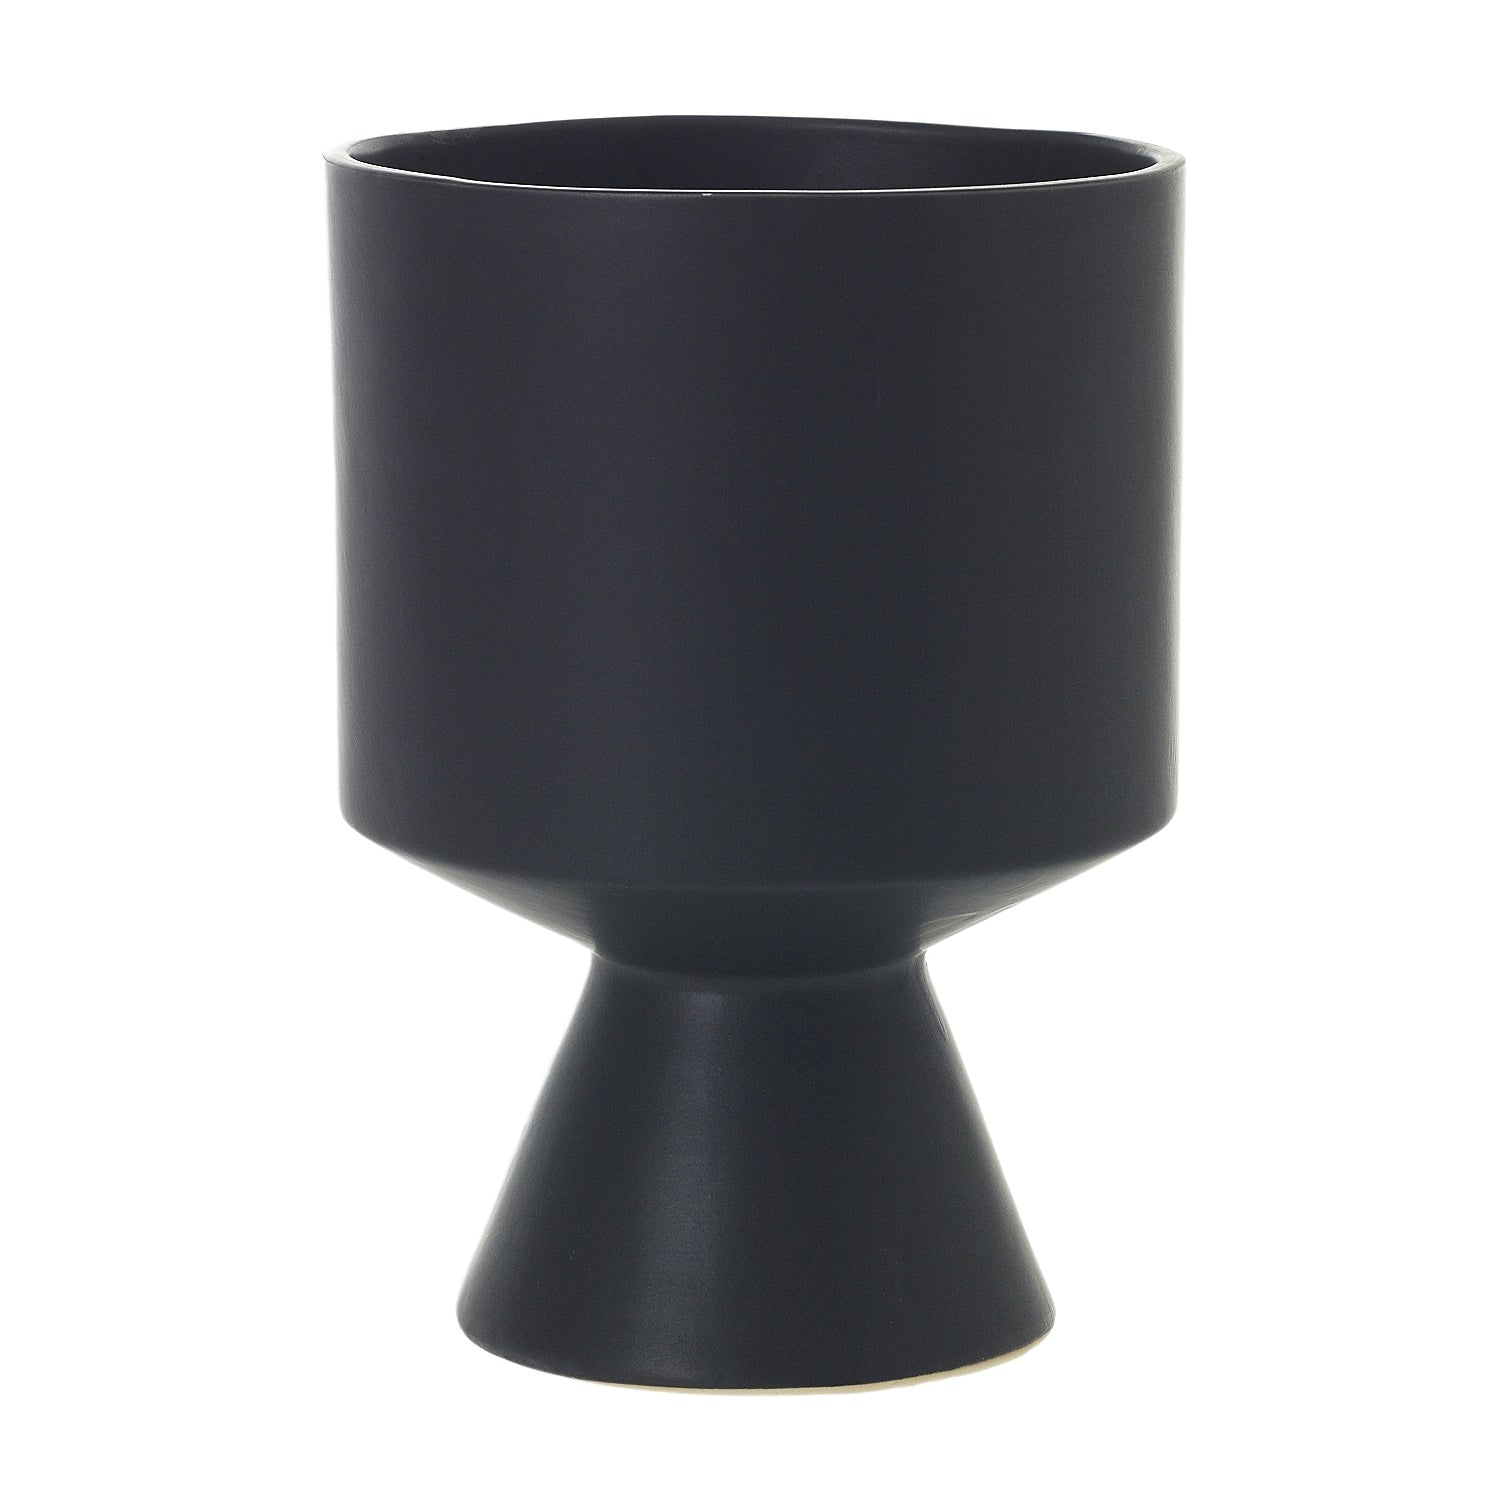 "6"" Pedestal Pot in Matte Black"